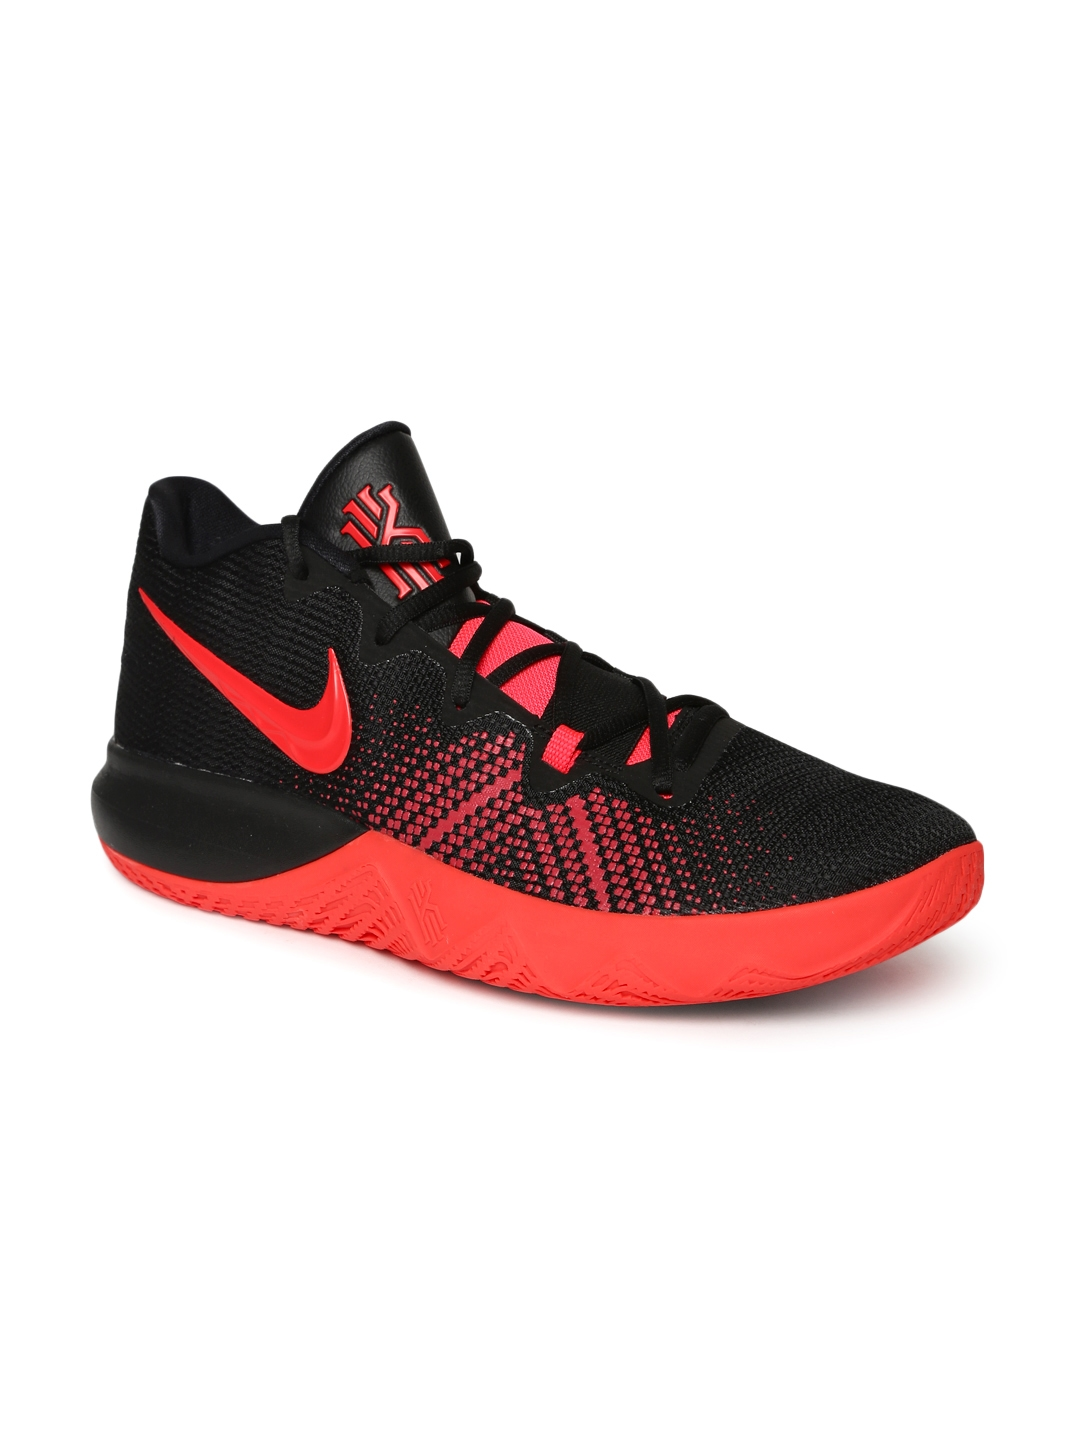 sale retailer 764f2 bc3f9 Nike Men Black Textile High-Top KYRIE FLYTRAP Basketball Shoes